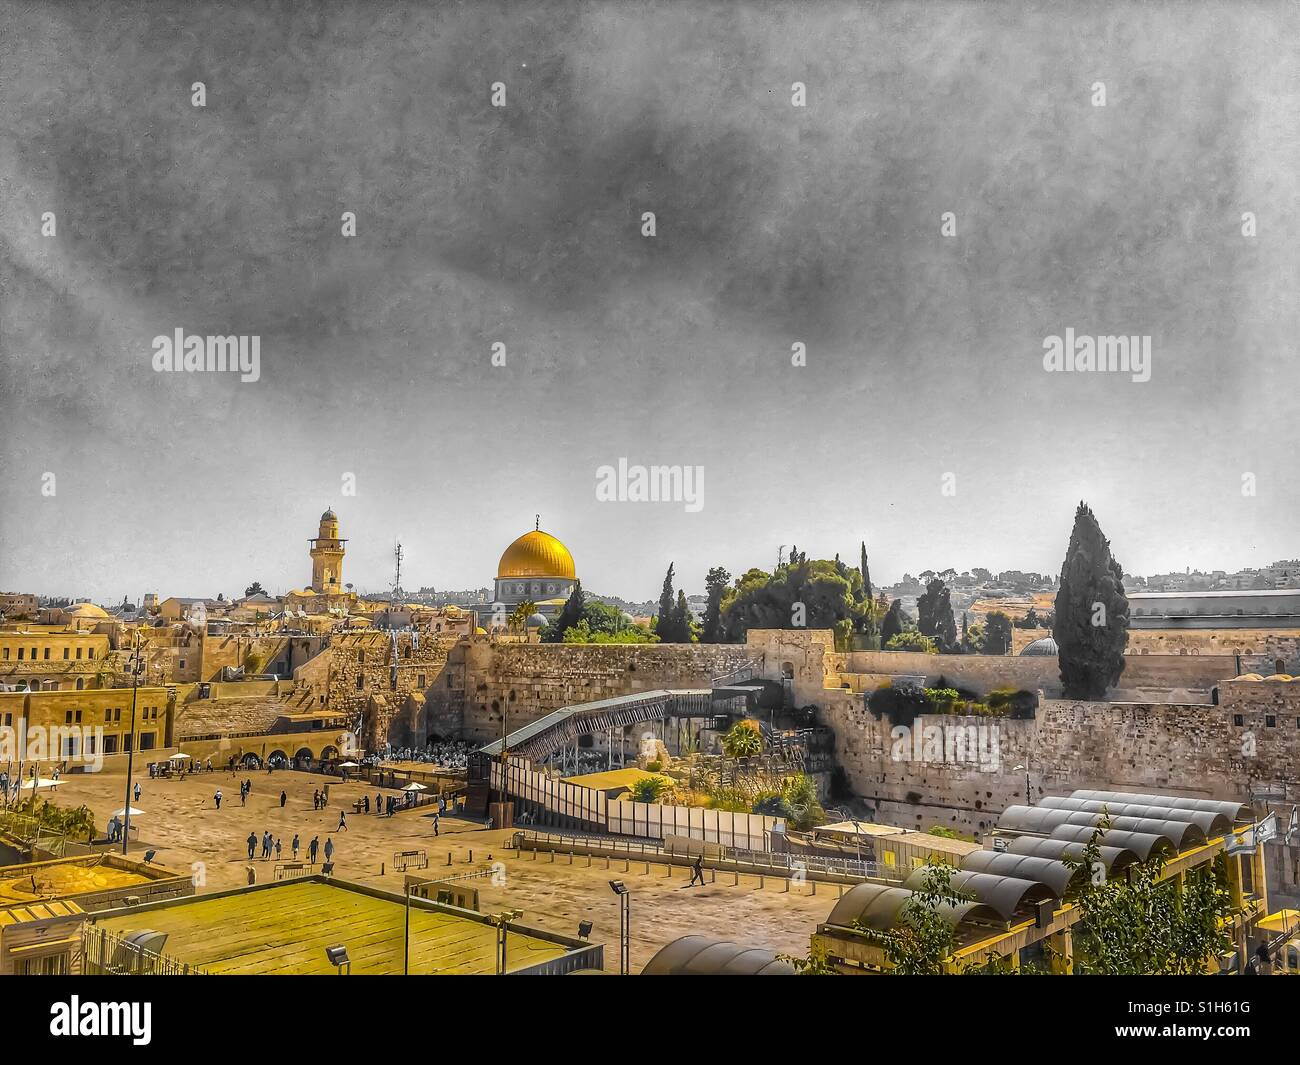 View of the Wailing Wall from above - Jerusalem, Israel 2017 - Stock Image